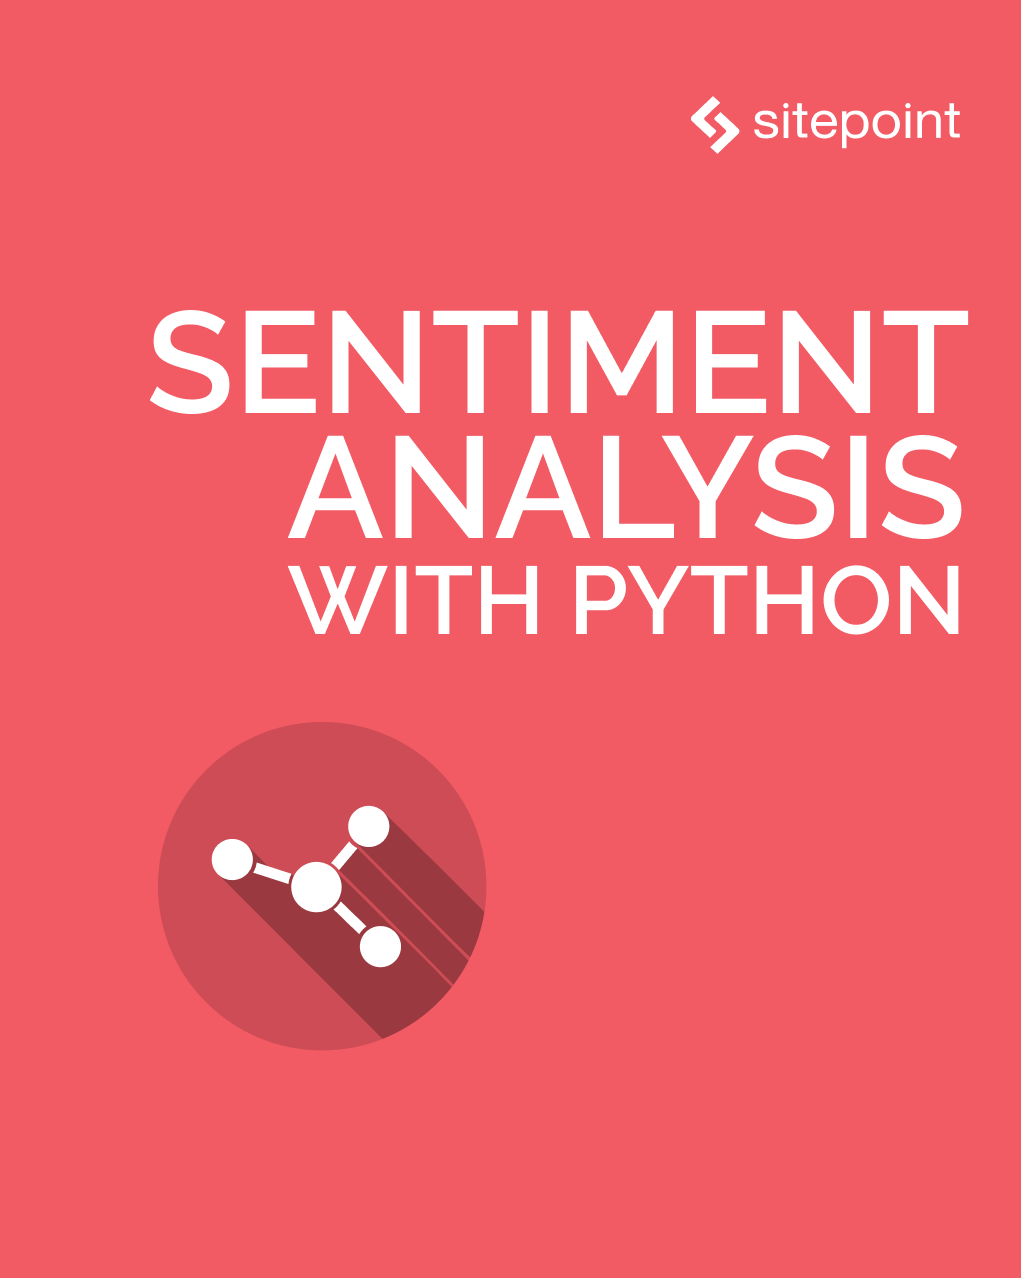 Sentiment Analysis with Python